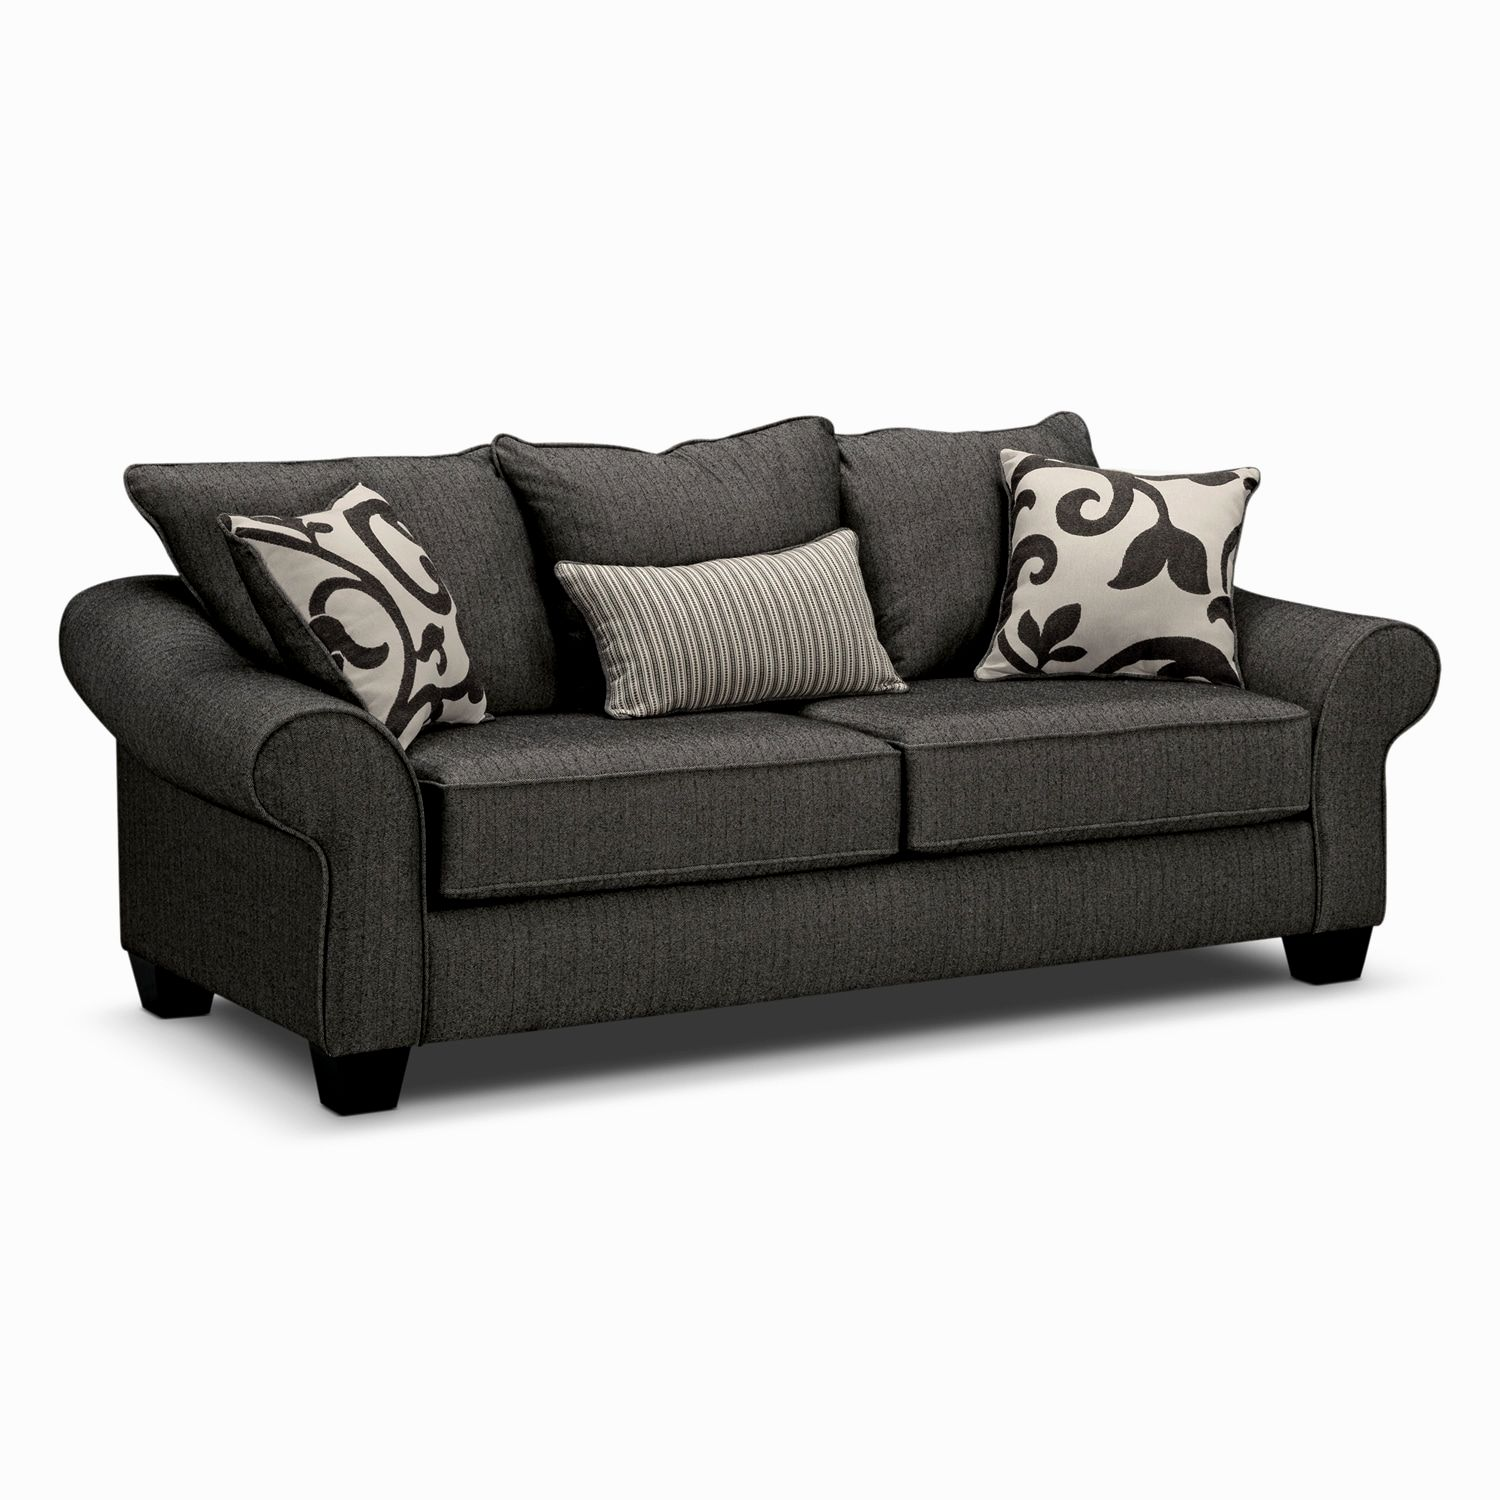 new cheap recliner sofas picture-Inspirational Cheap Recliner sofas Construction